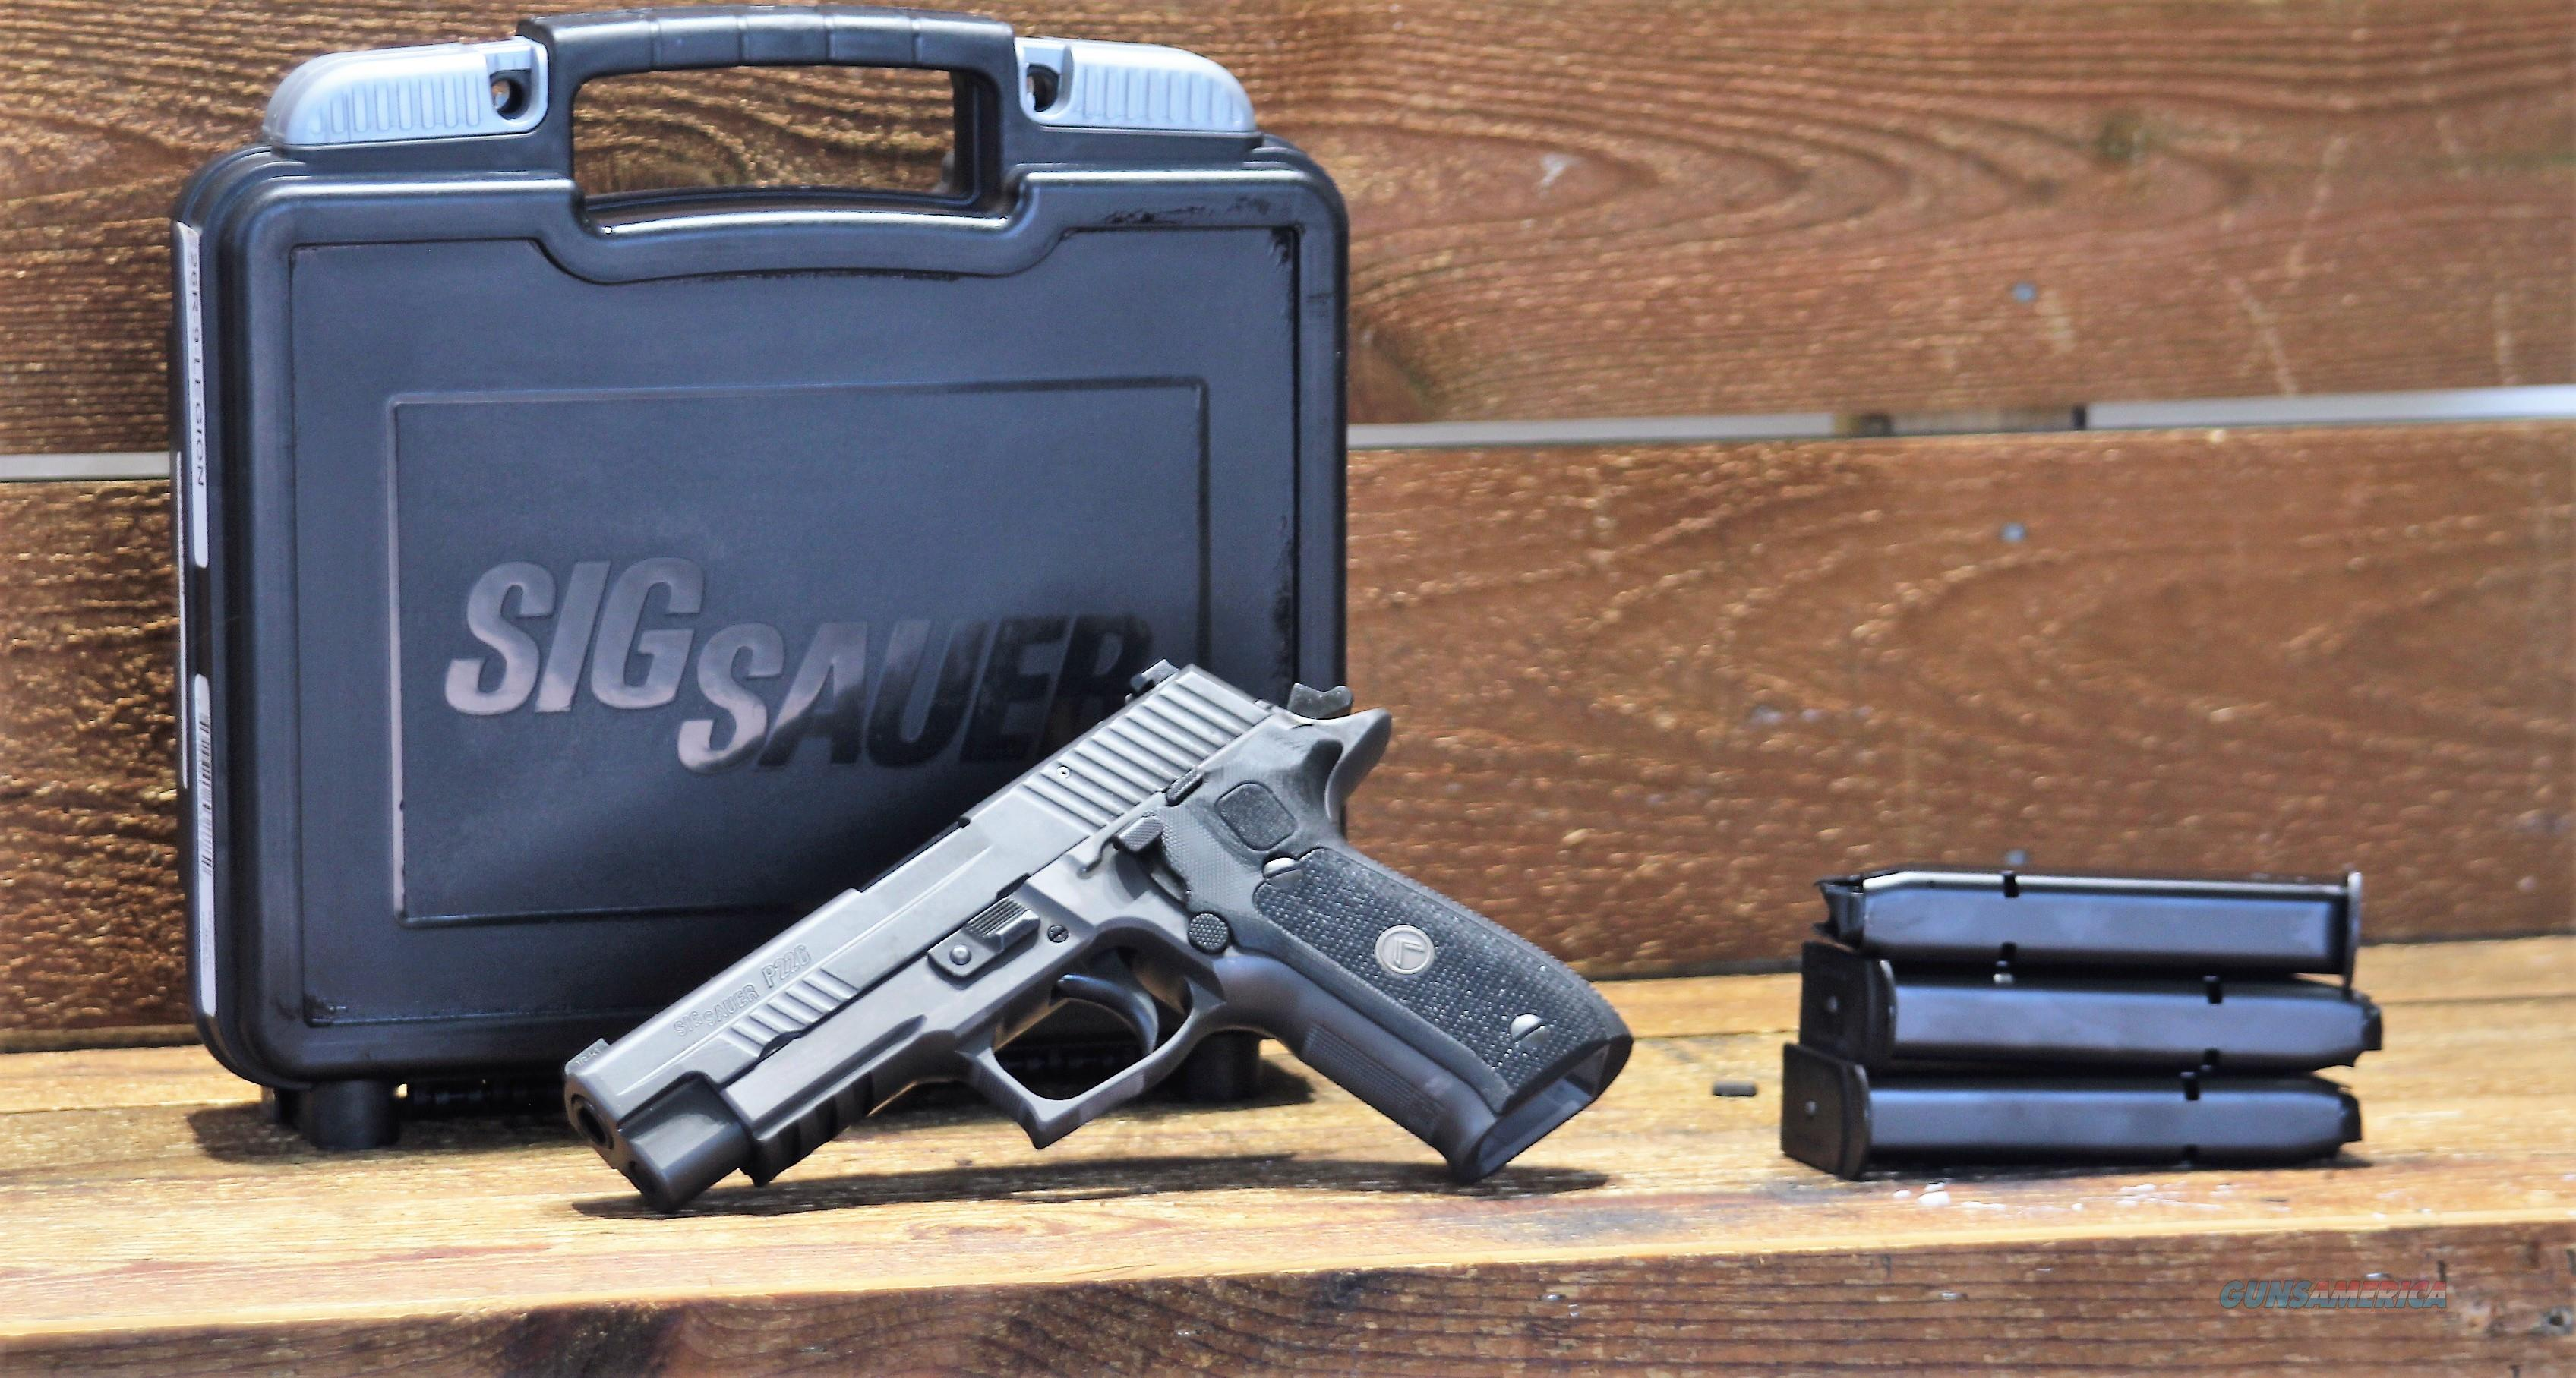 "EASY PAY $110 LAYAWAY Sig Sauer E26R9LEGIONS P226 Legion SAO 9mm 4.4"" 15+1 Black G10 Grip Gray PVD  Guns > Pistols > Sig - Sauer/Sigarms Pistols > P226"